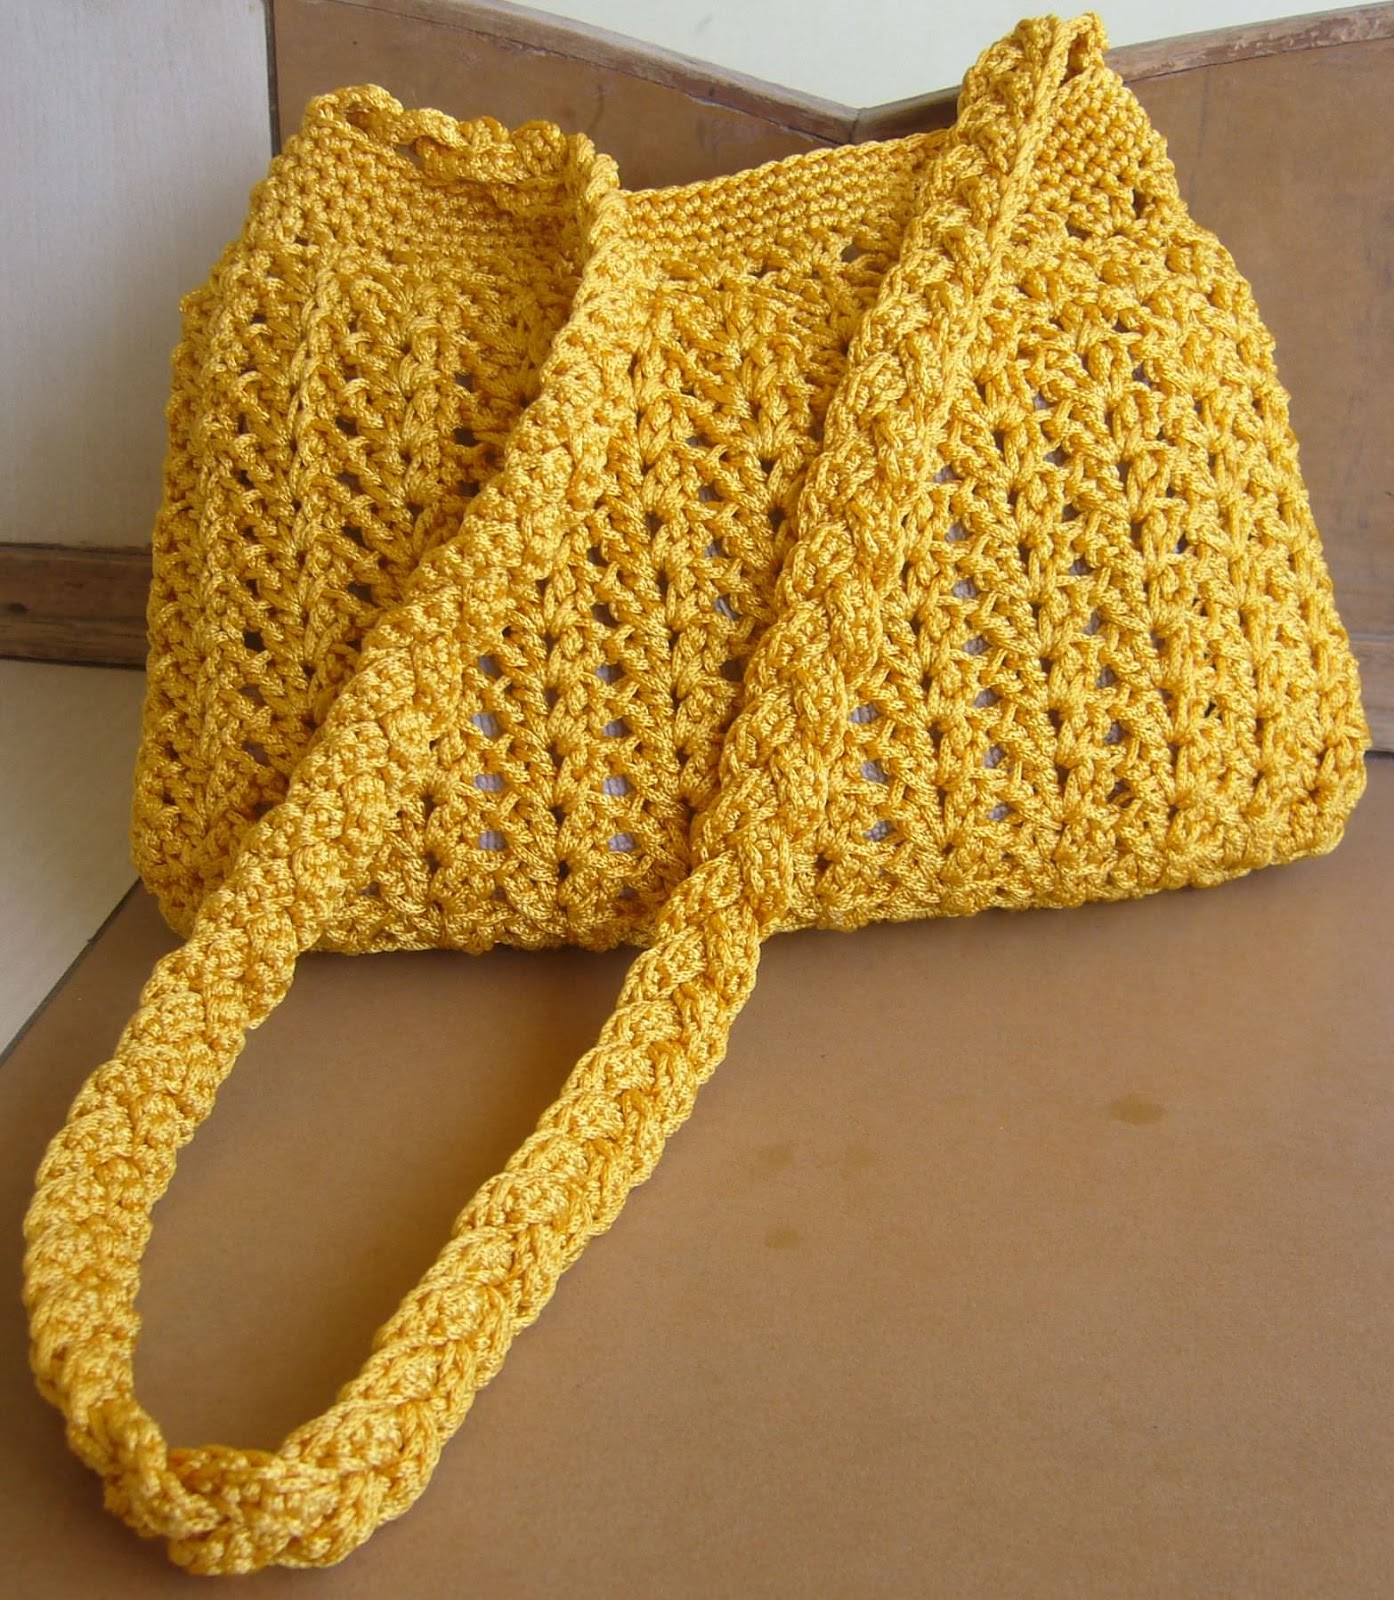 How To Make Crochet Purse : Crochetkari: Golden yellow crochet purse